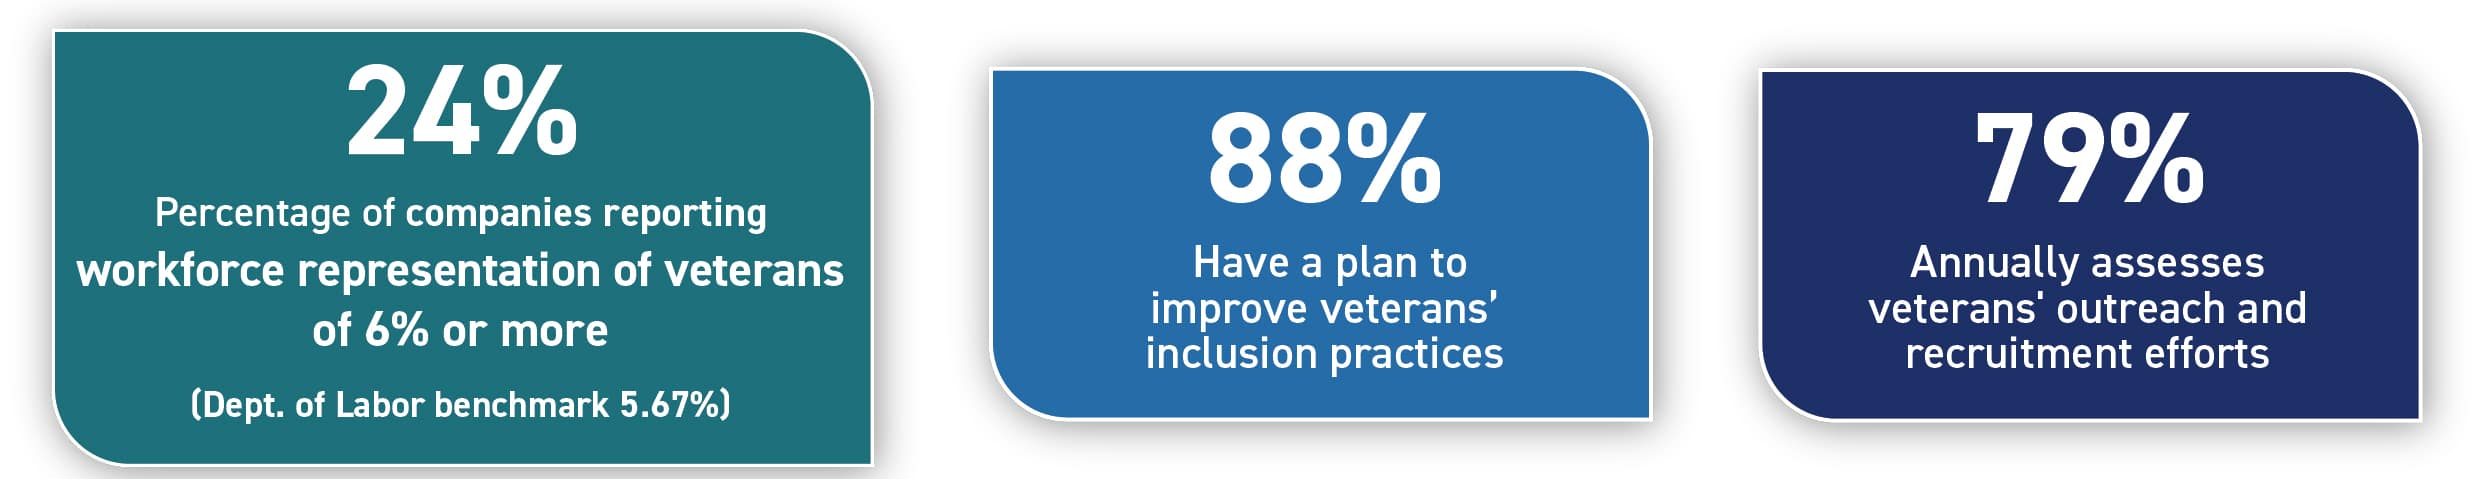 24$ Report veterans' workforce representation of 6% or more (Dept. of Labor VEVRAA benchmark 5.67%), 88%; Have a plan to improve veterans' inclusion practices, 88%; Annually assess veterans' outreach and recruitment efforts, 79%.